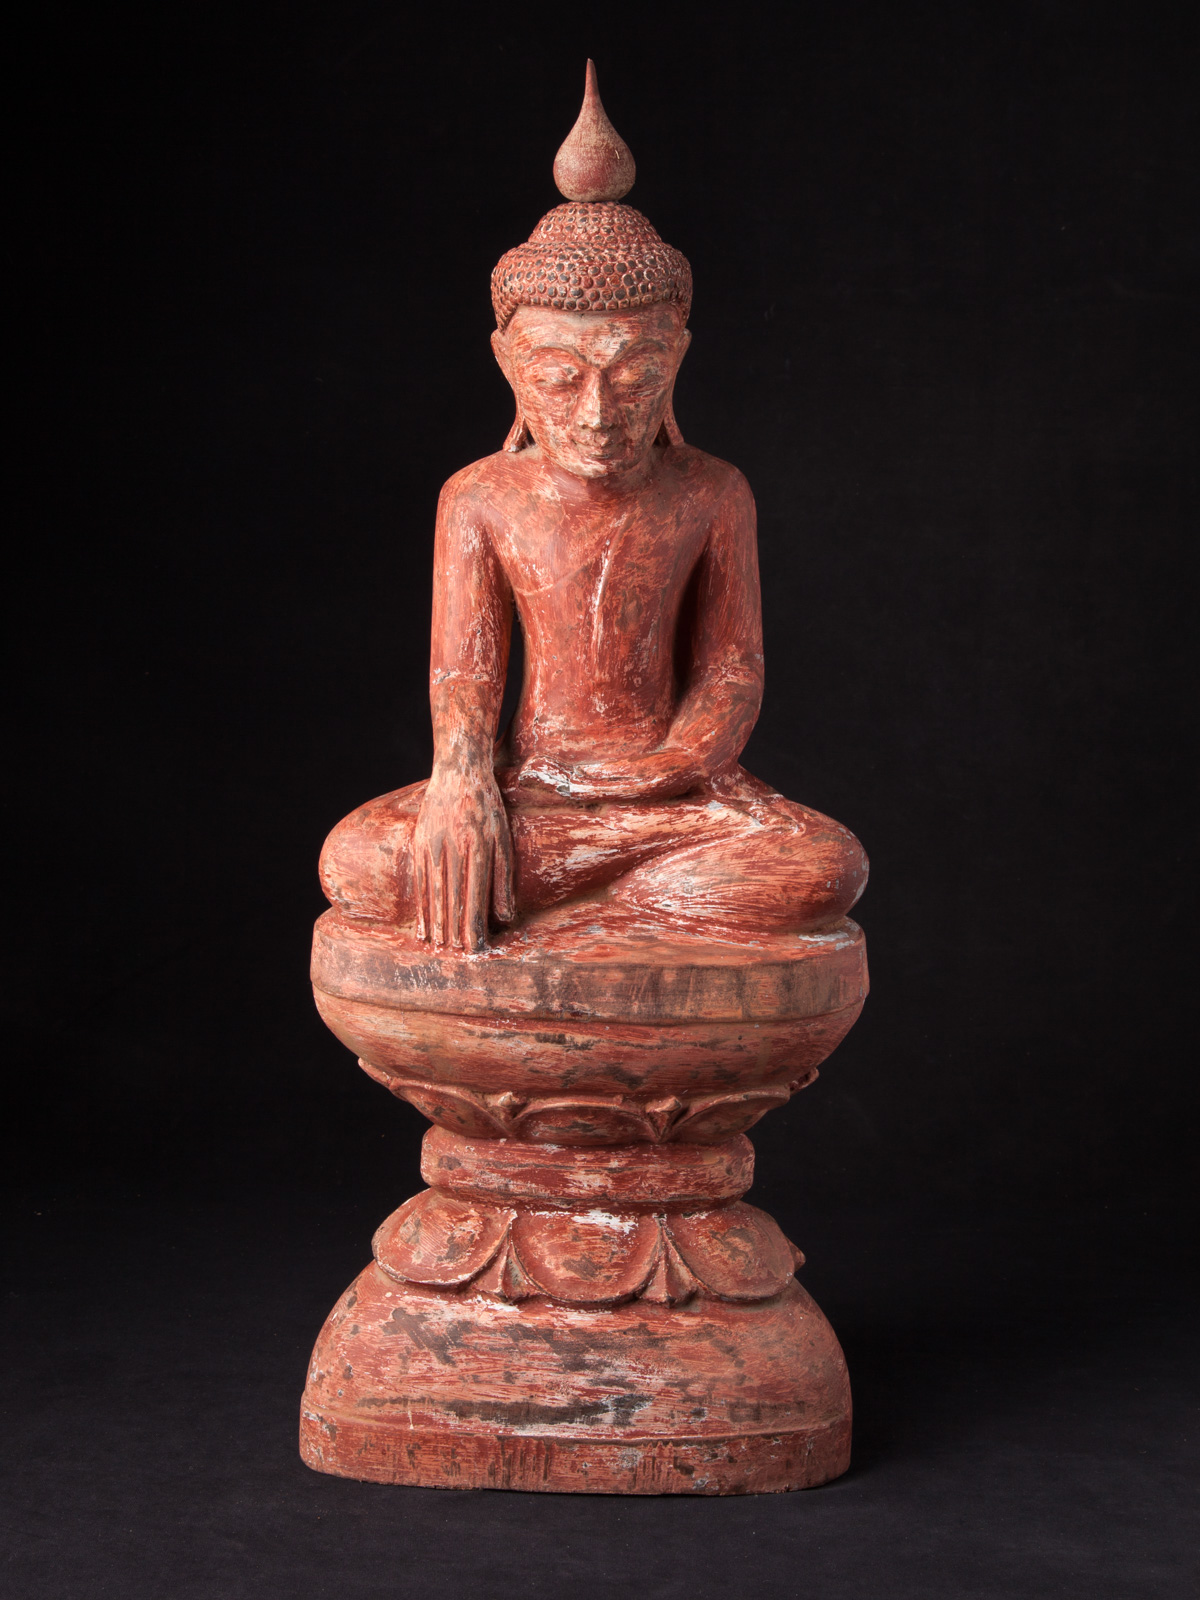 Old wooden Burmese Buddha statue from Burma